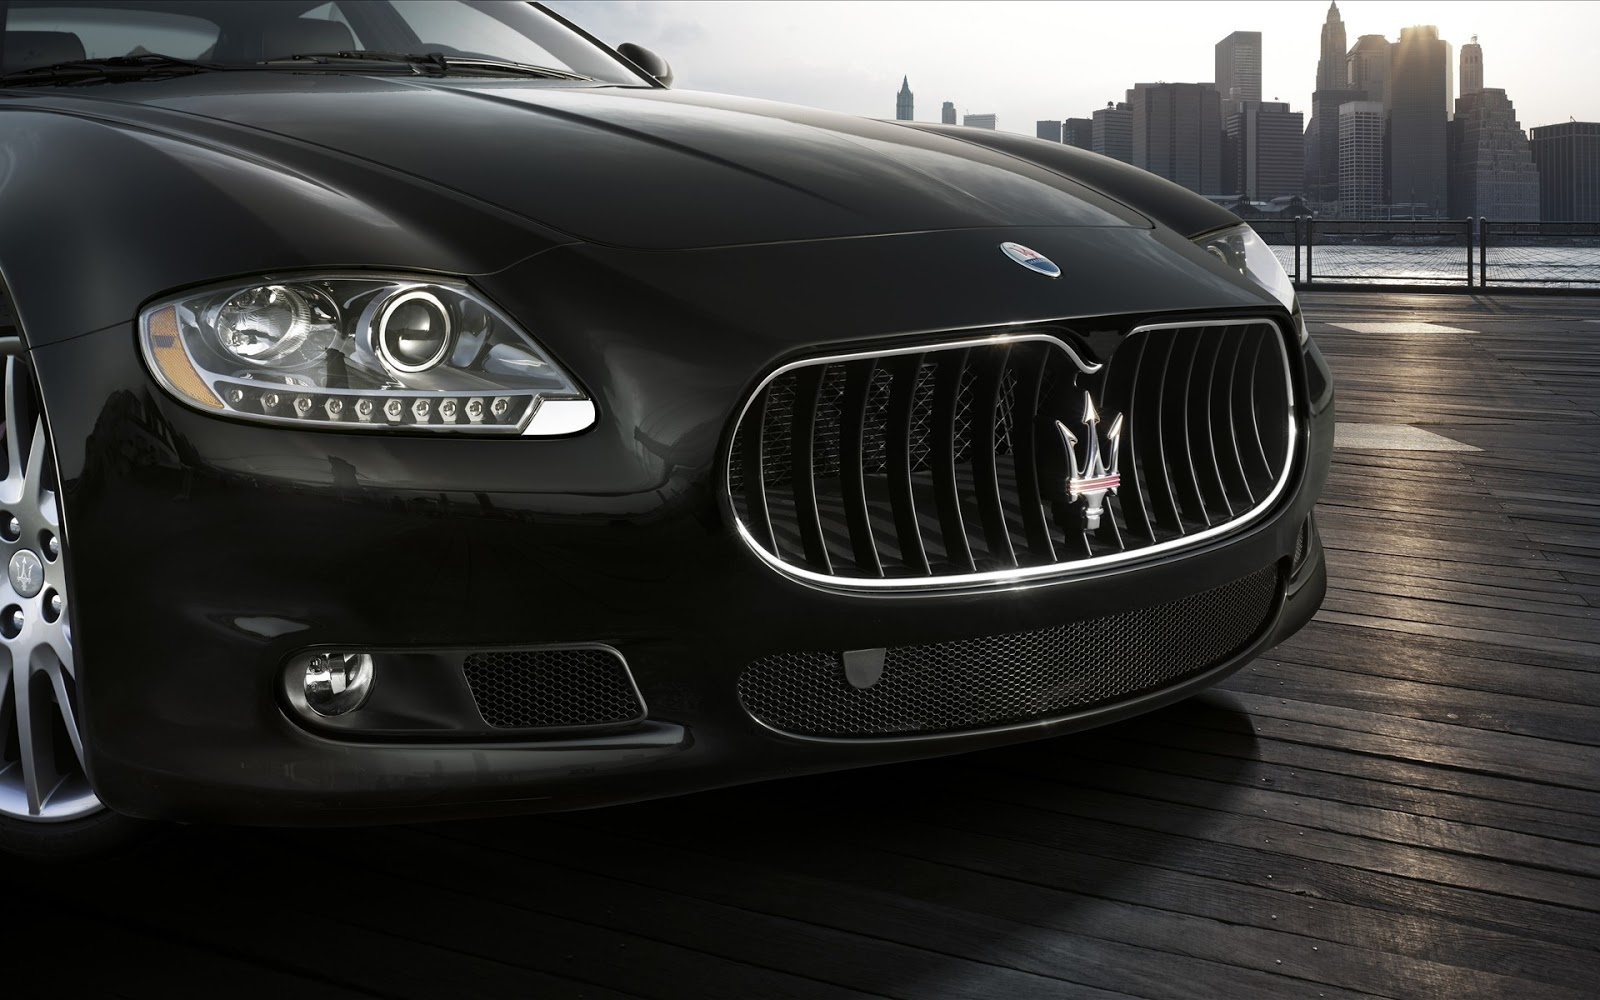 Maserati Logo, Maserati Car Symbol Meaning and History | Car Brand ...